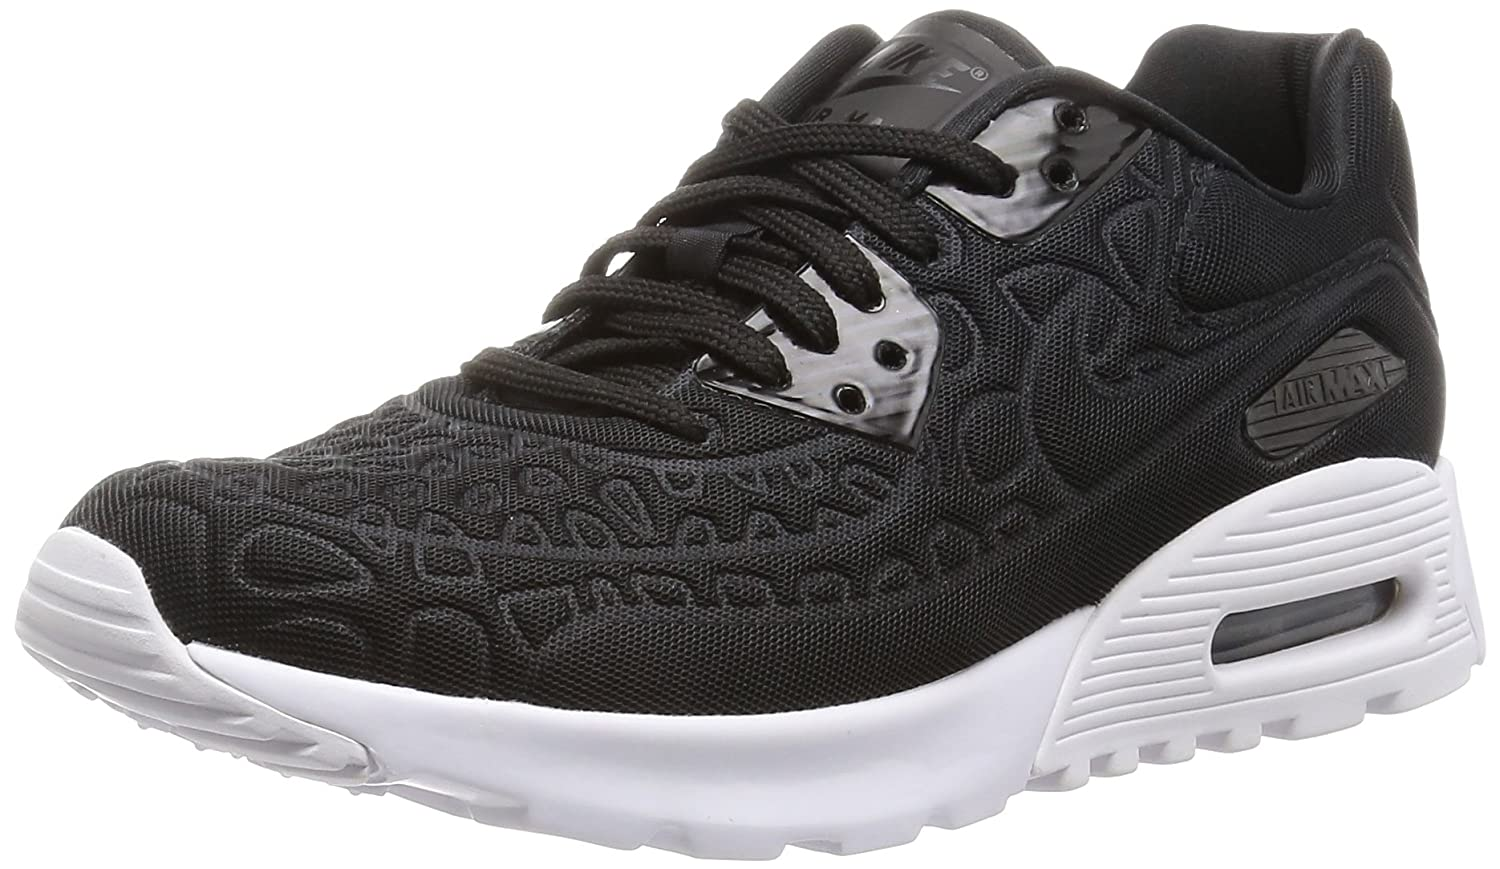 newest dfcba d9f7c Amazon.com   Nike Womens Air Max 90 Ultra Plush Running Trainers 844886 Sneakers  Shoes   Fashion Sneakers